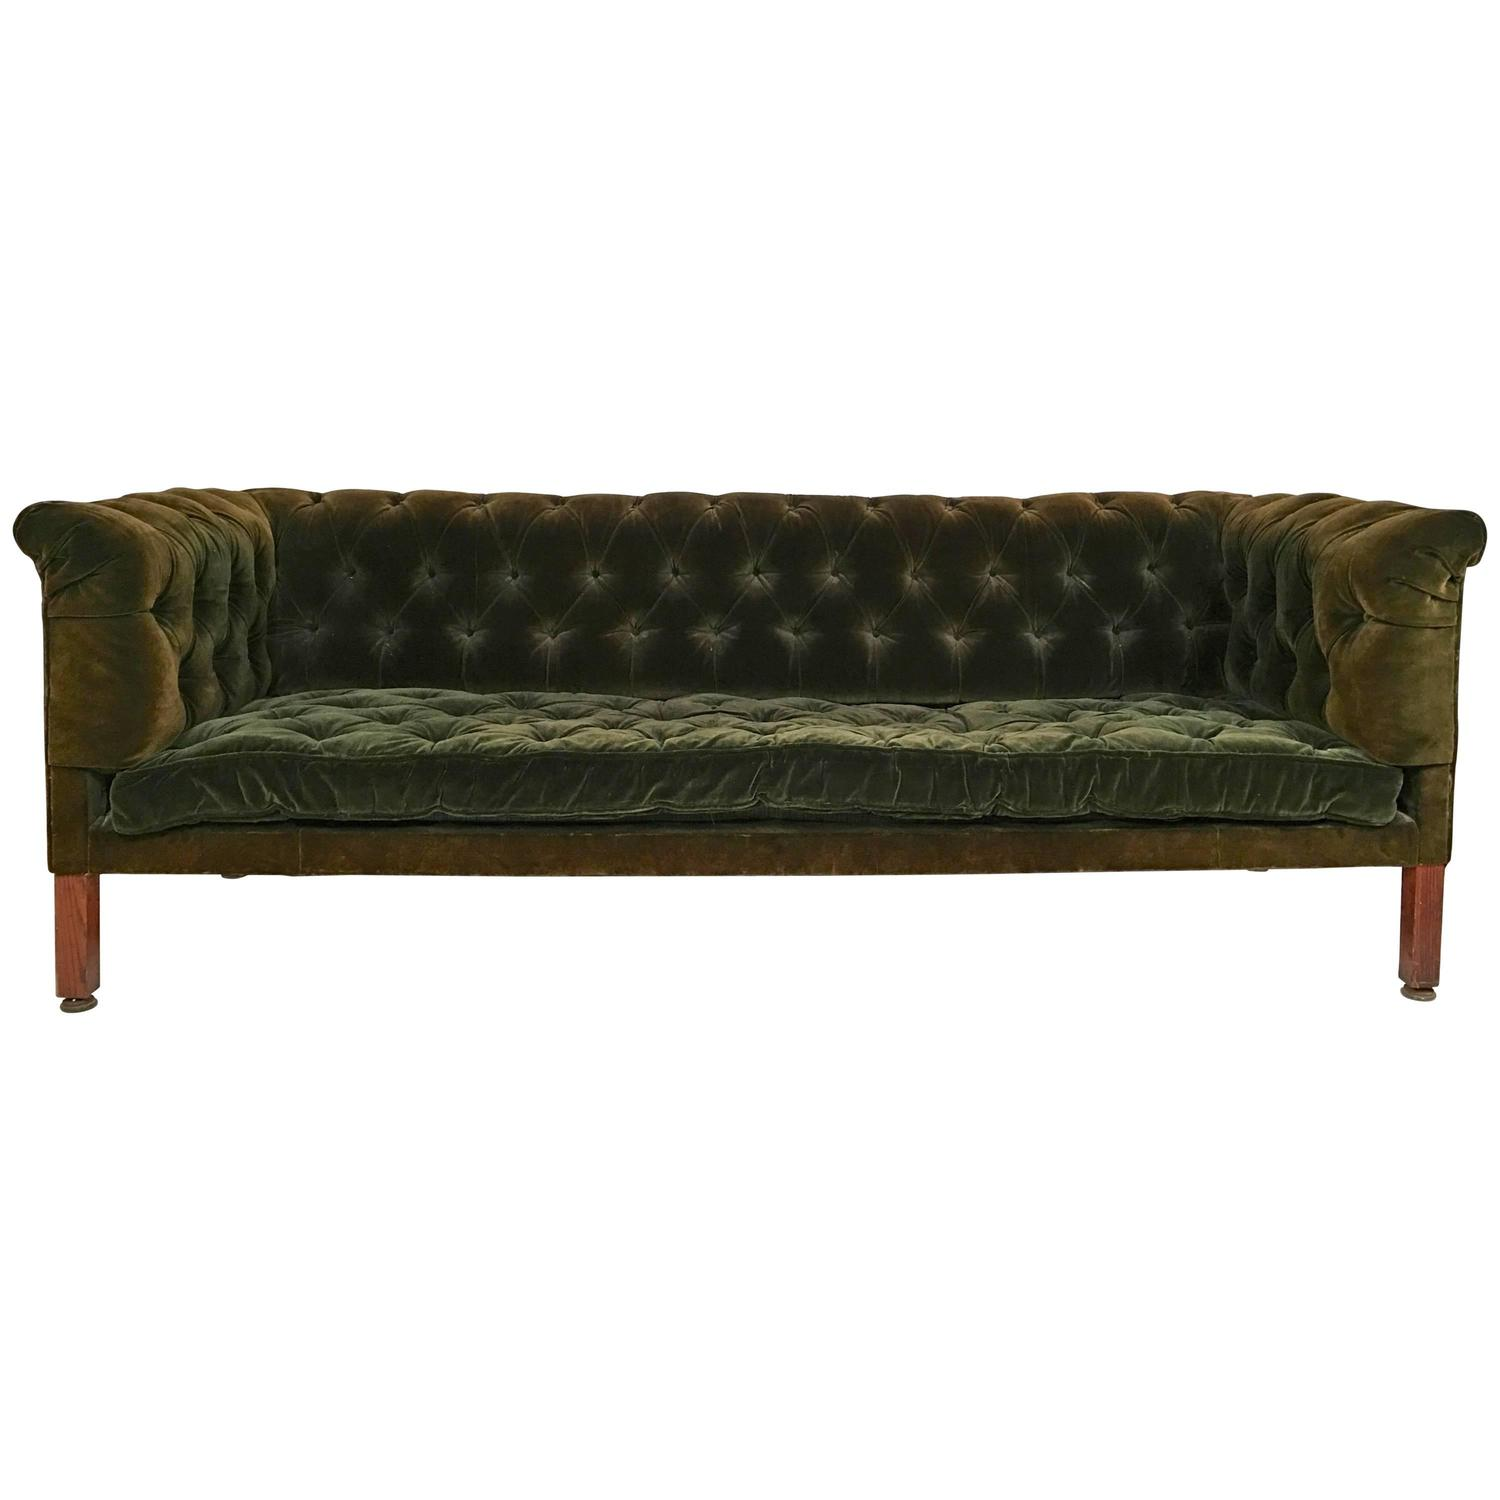 green velvet tufted chair white wooden folding chairs for weddings 2 19th century chesterfield sofa at 1stdibs